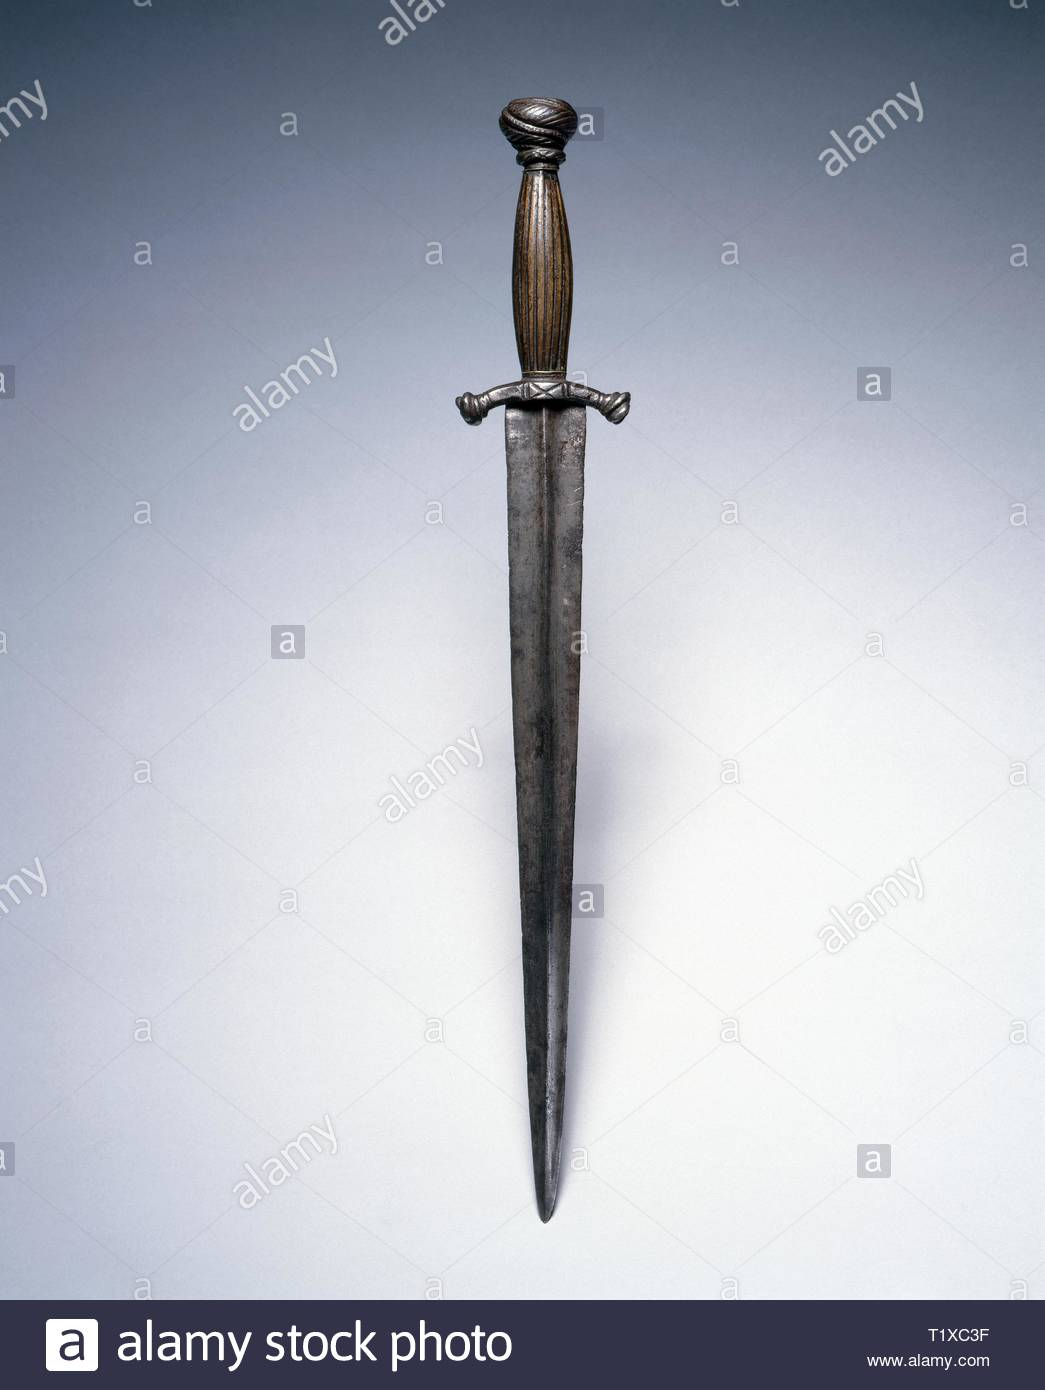 Dagger, mid 1500s. Germany, mid-16th century. Steel; elk horn grip; overall: 37.8 cm (14 7/8 in.); blade: 27.7 cm (10 7/8 in.); quillions: 6.5 cm (2 9/16 in.). - Stock Image